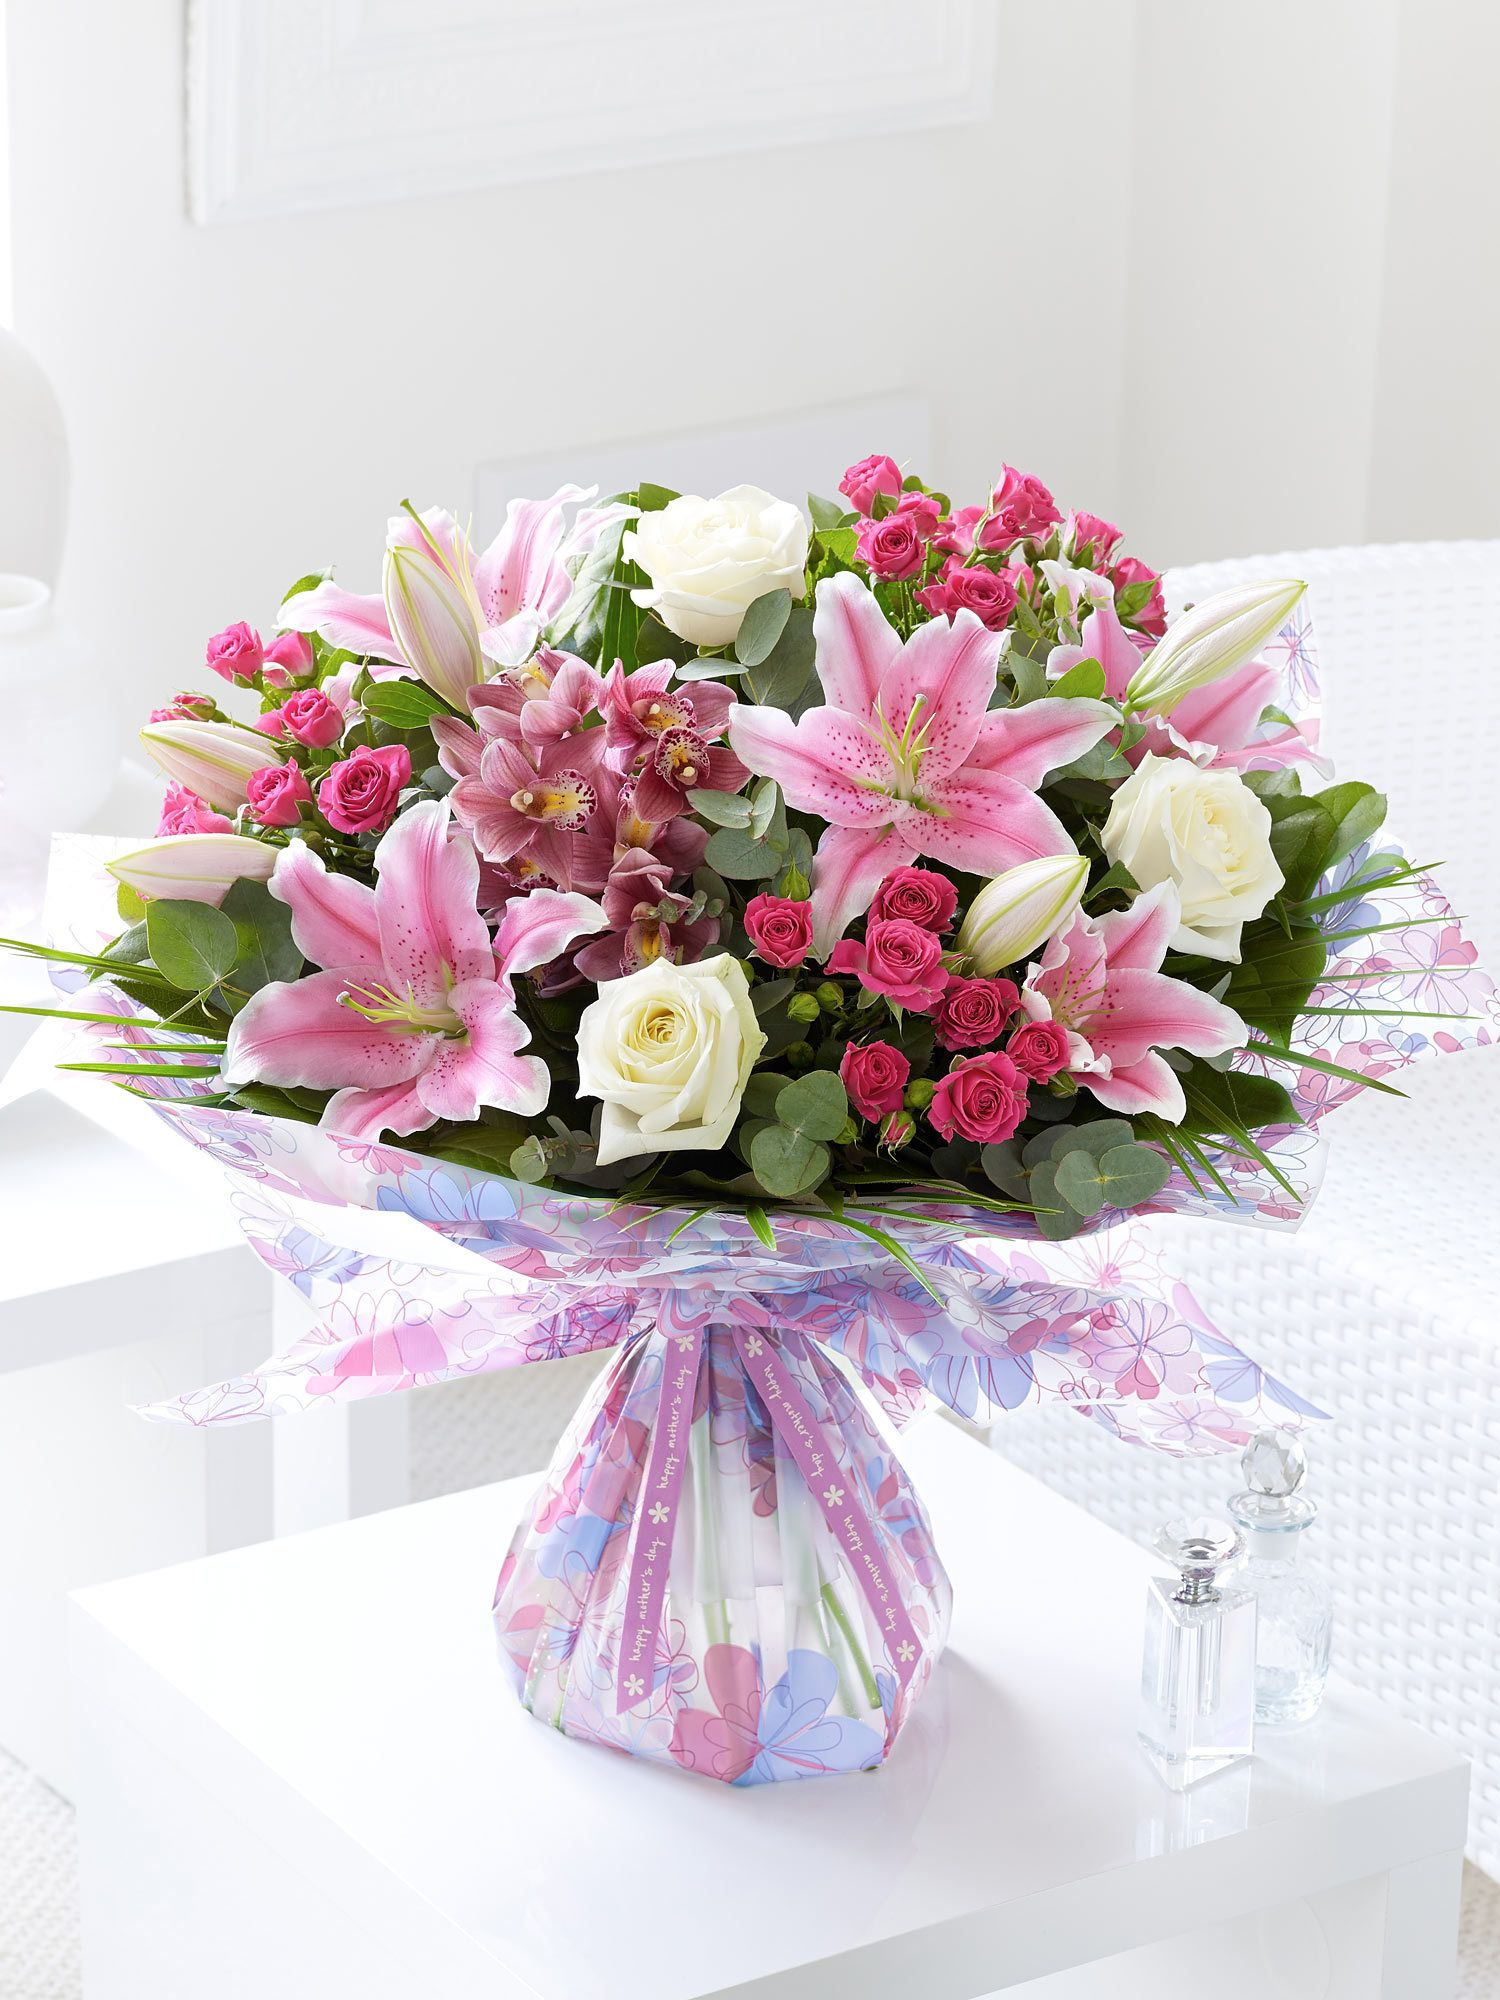 Booker Flowers Floral Emporiums Mother S Day Extravagance Hand Tied Interflora Mothers Day Flowers Mothers Day Flower Delivery Same Day Flower Delivery